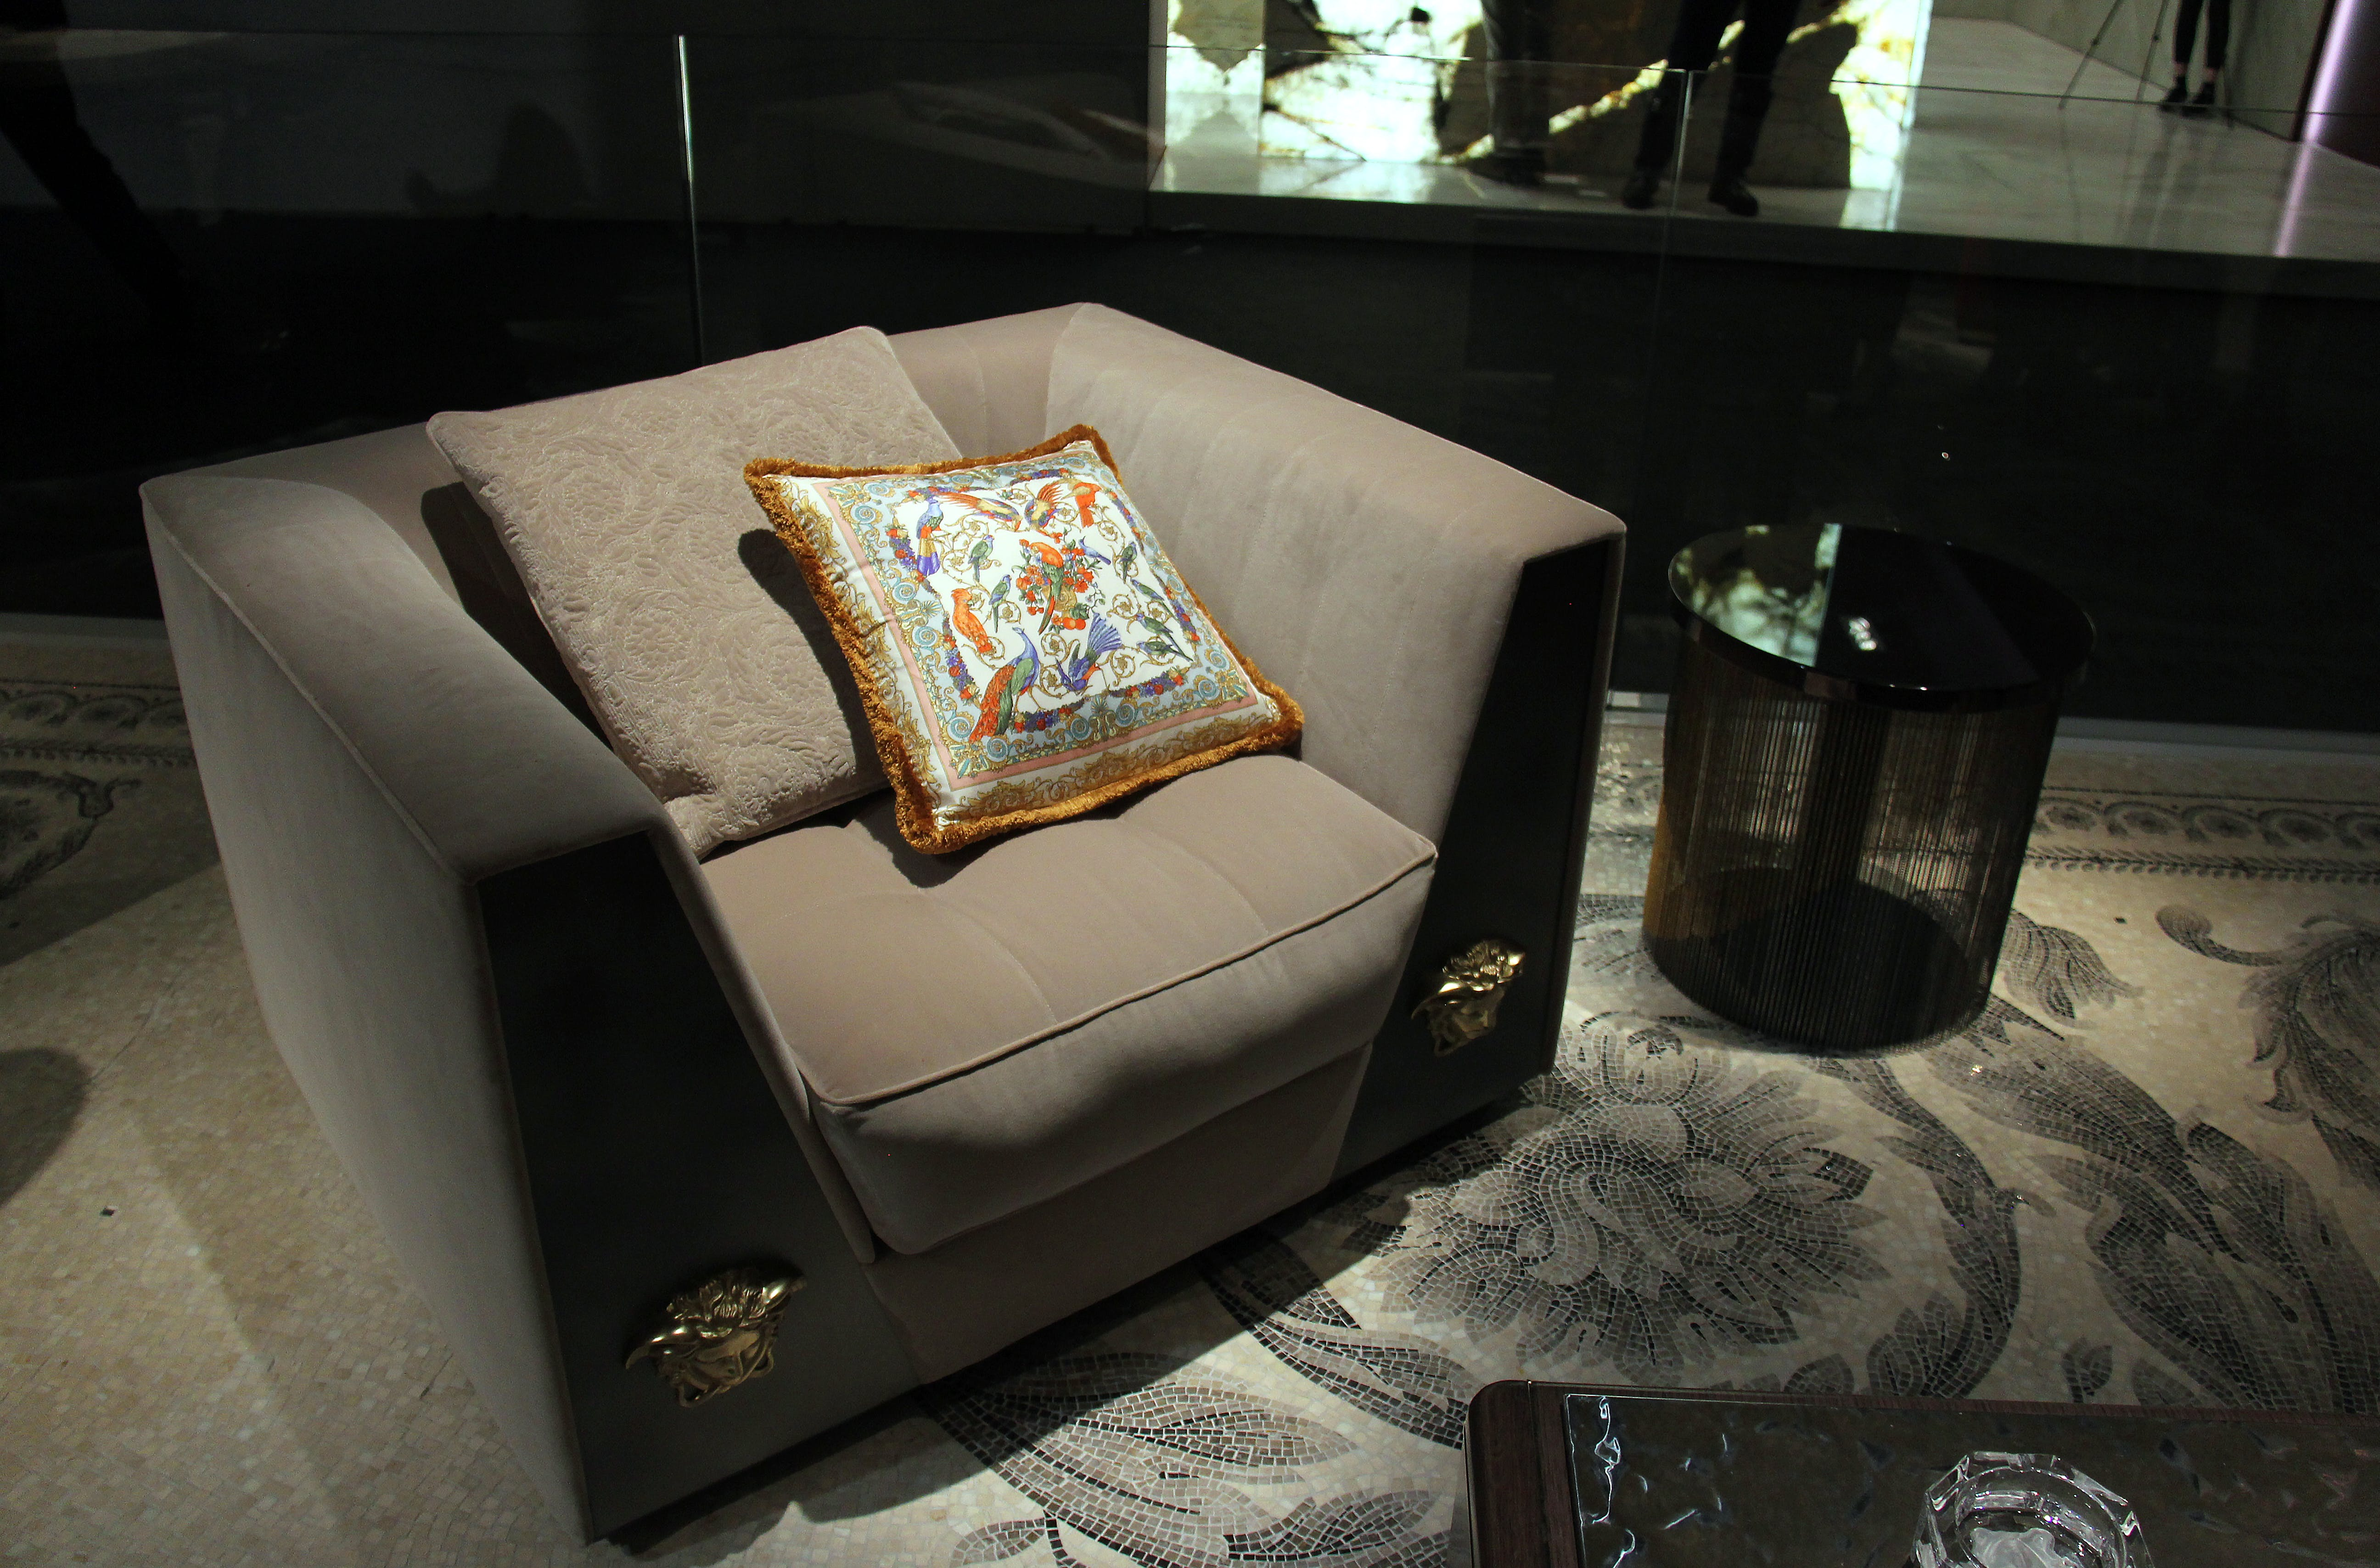 Two Throw Pillows on Top of Sofa Chair